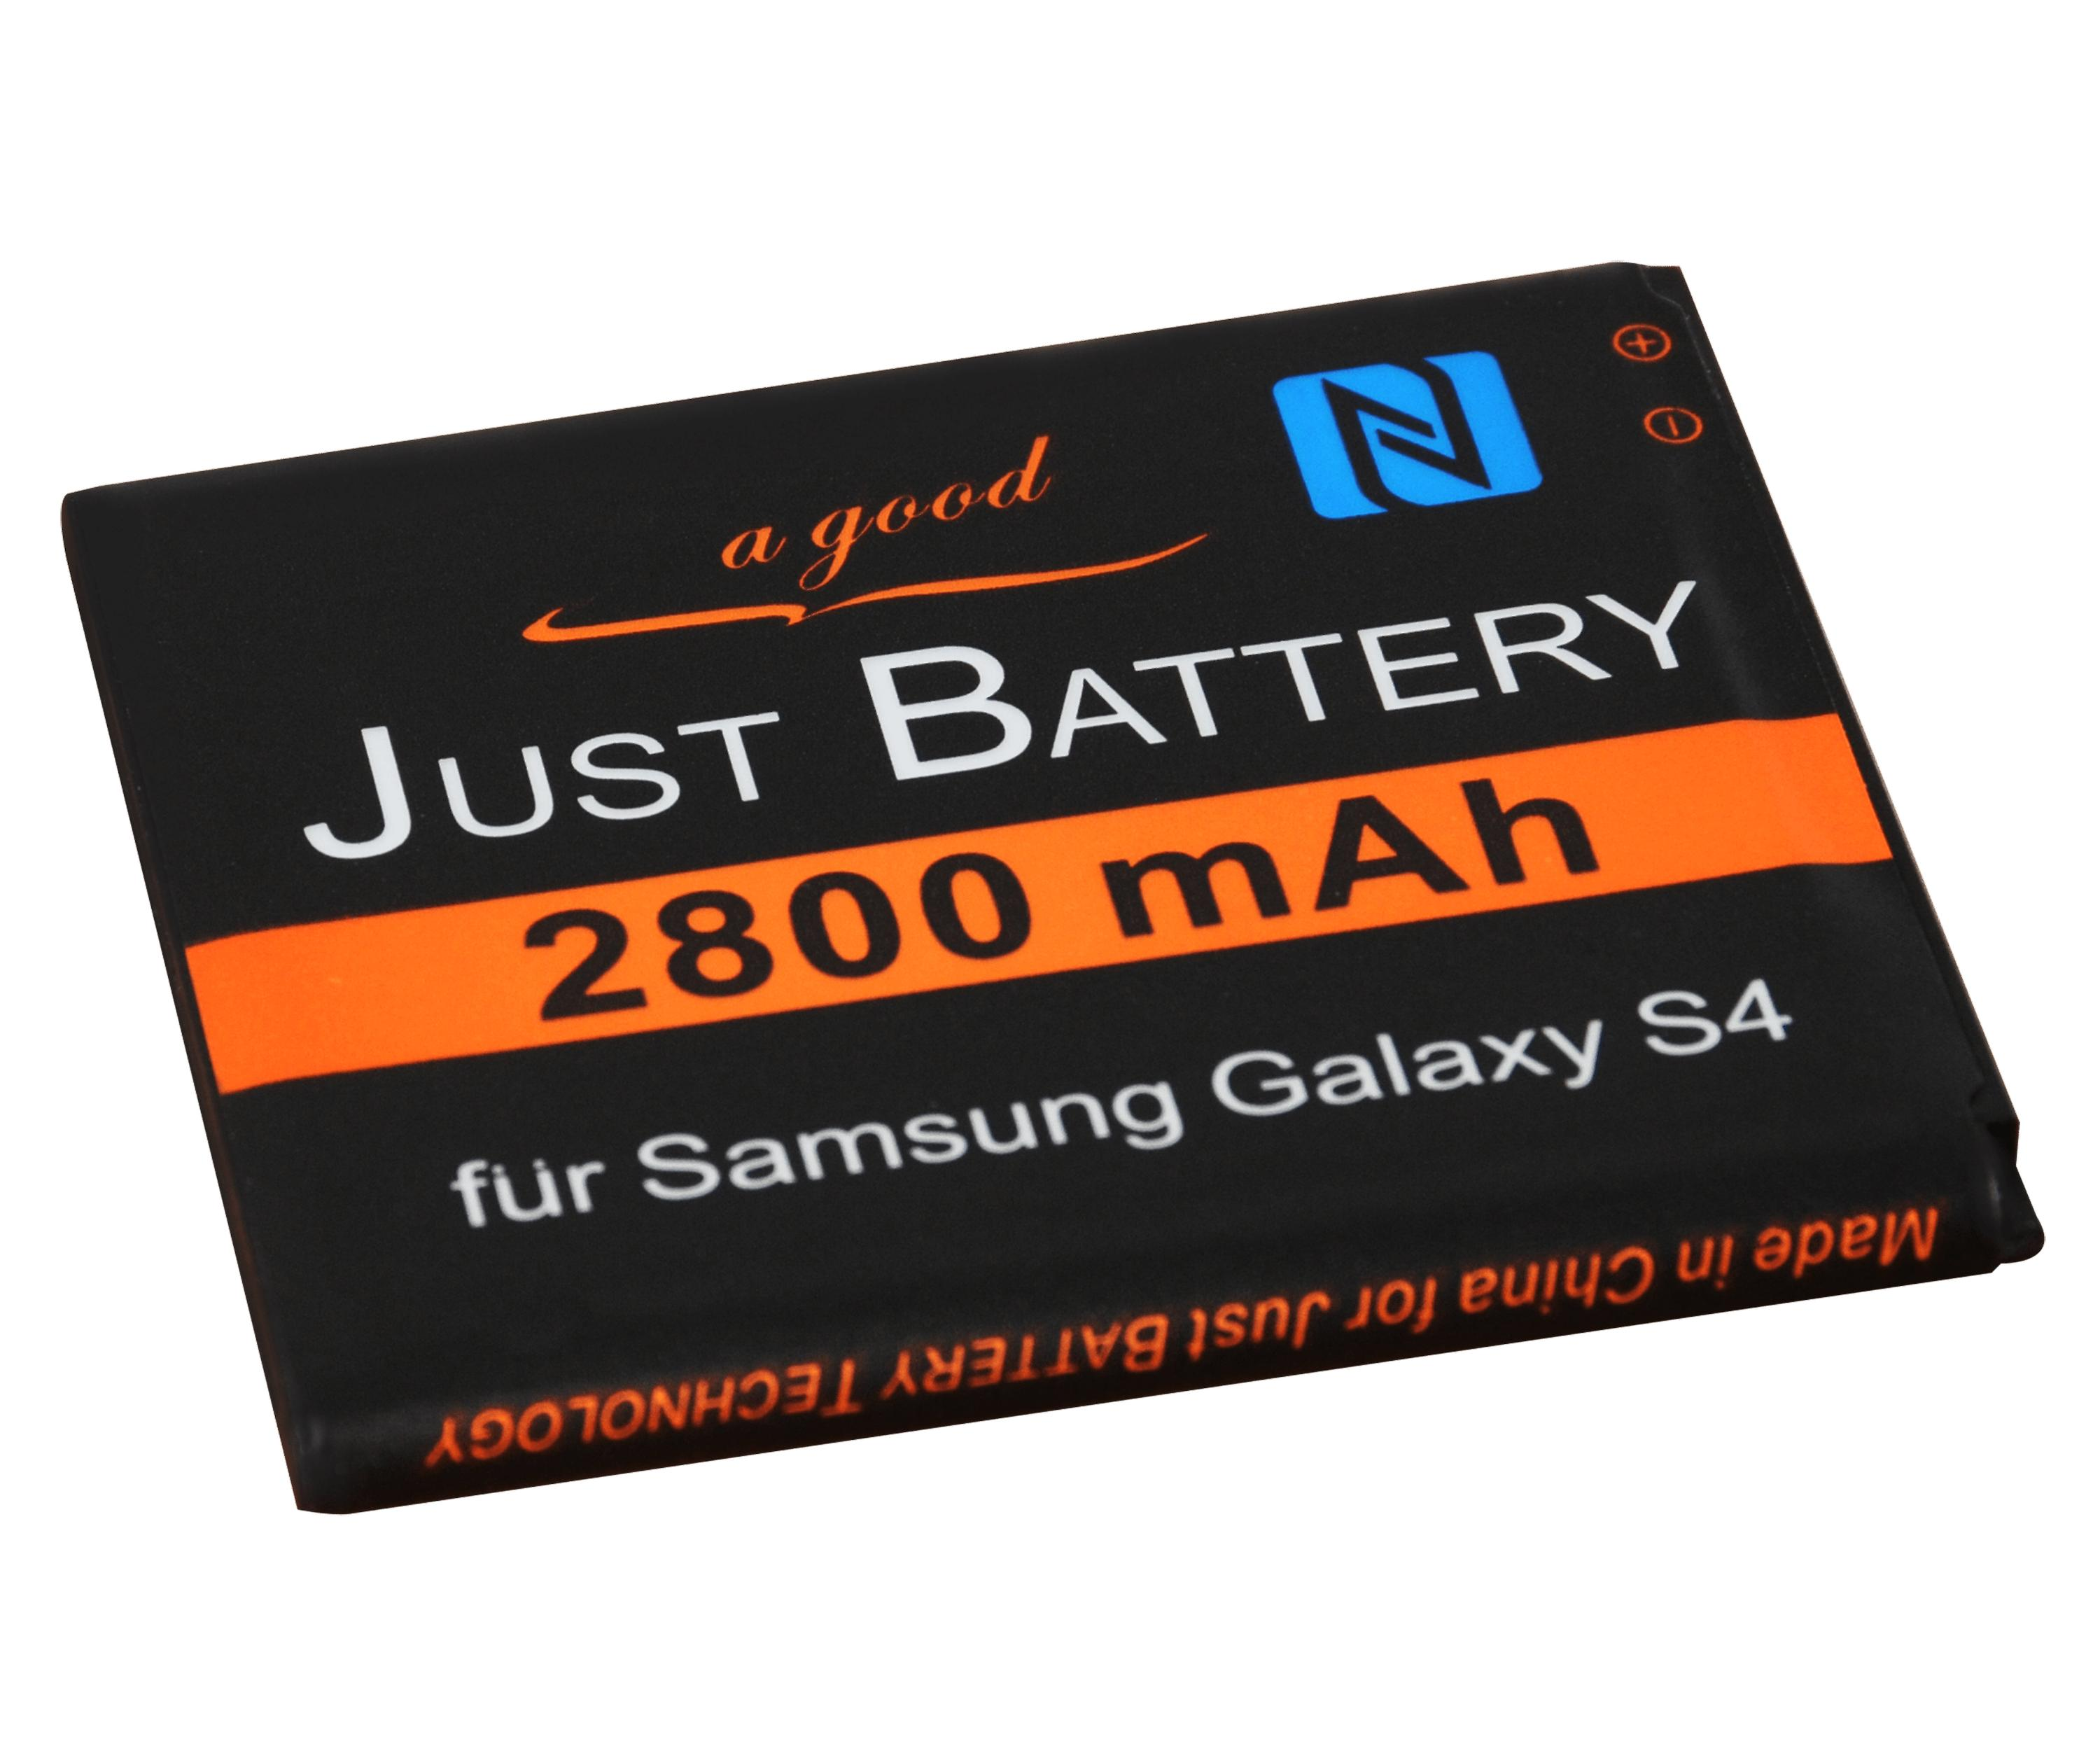 Battery for Samsung Galaxy S4 value Edition GT-i9515